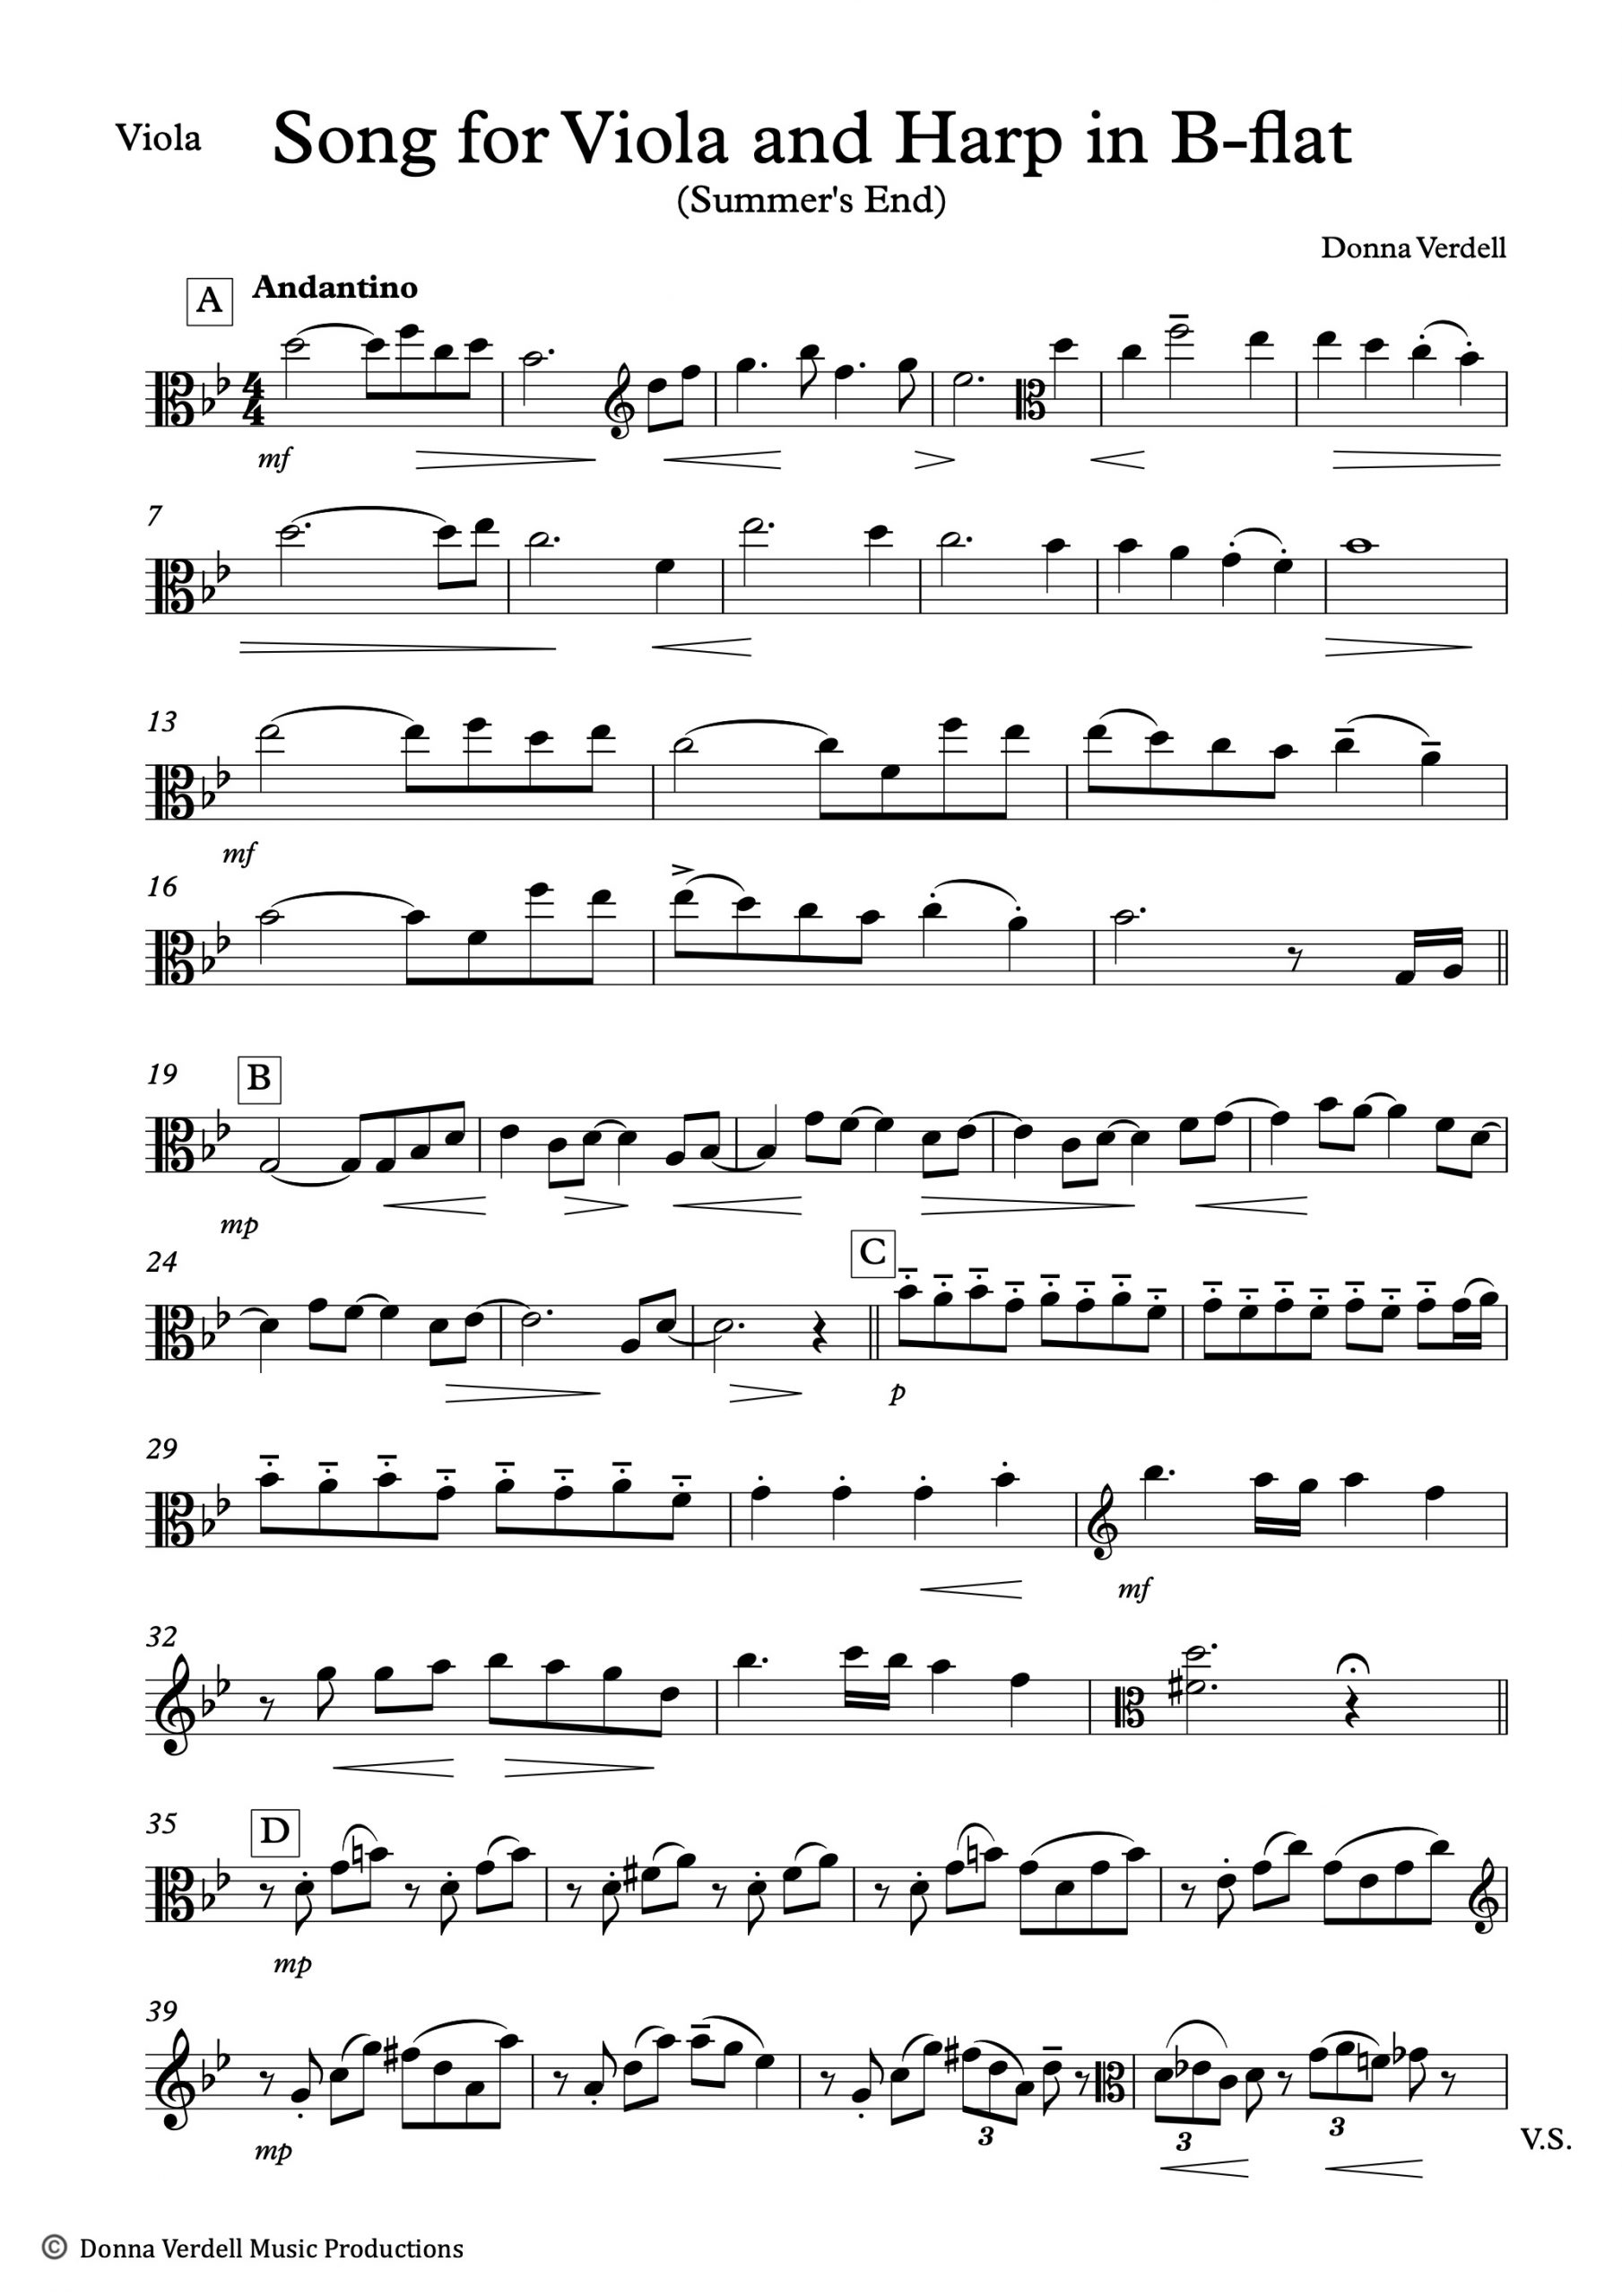 Song for Viola and Harp in B flat (Summer's End) - Donna Verdell VIOLA blad 1